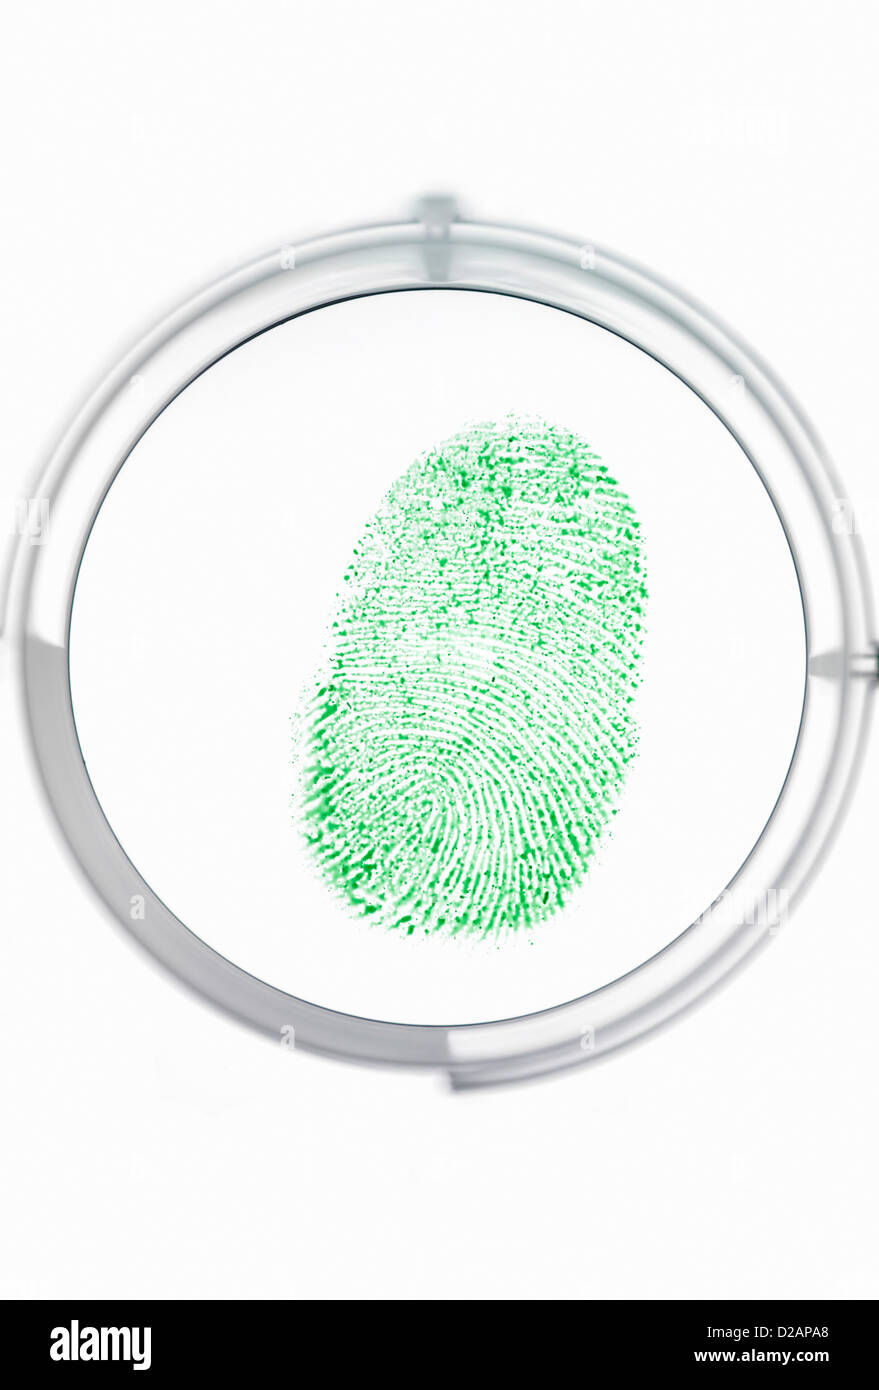 Finger print being identified as a password to access information - Stock Image